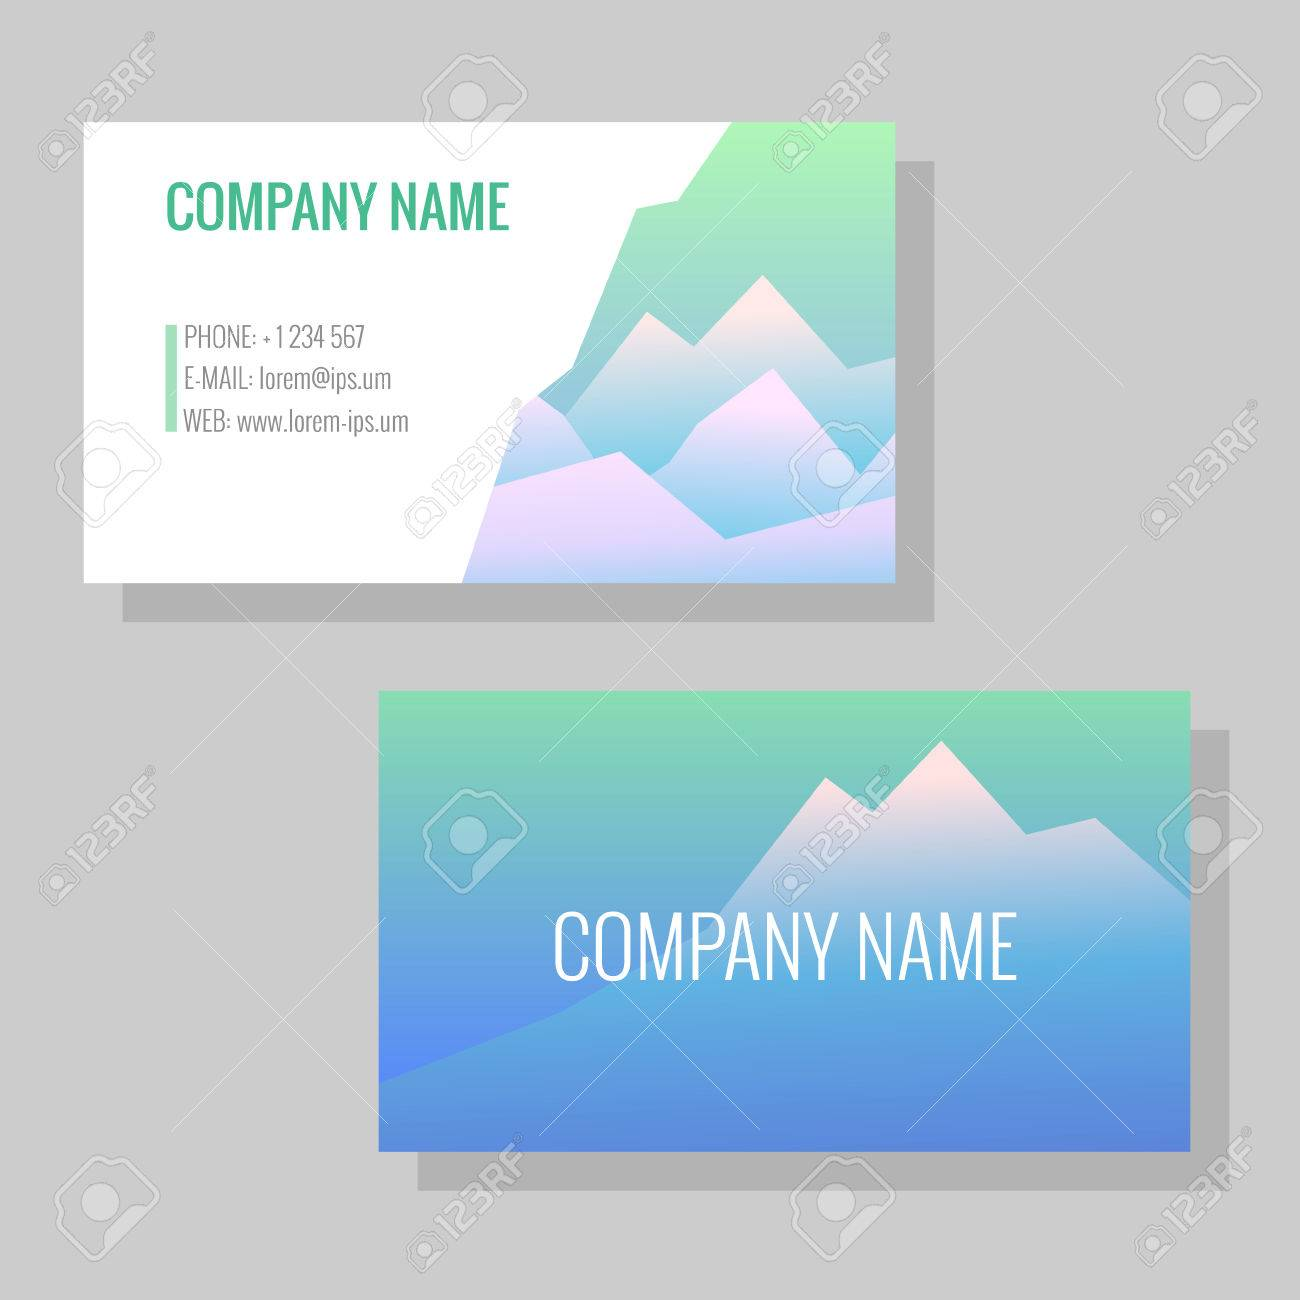 Vector template for business cards image of snowy mountains vector vector template for business cards image of snowy mountains business card or flyer for a travel agency or a sports shop reheart Gallery